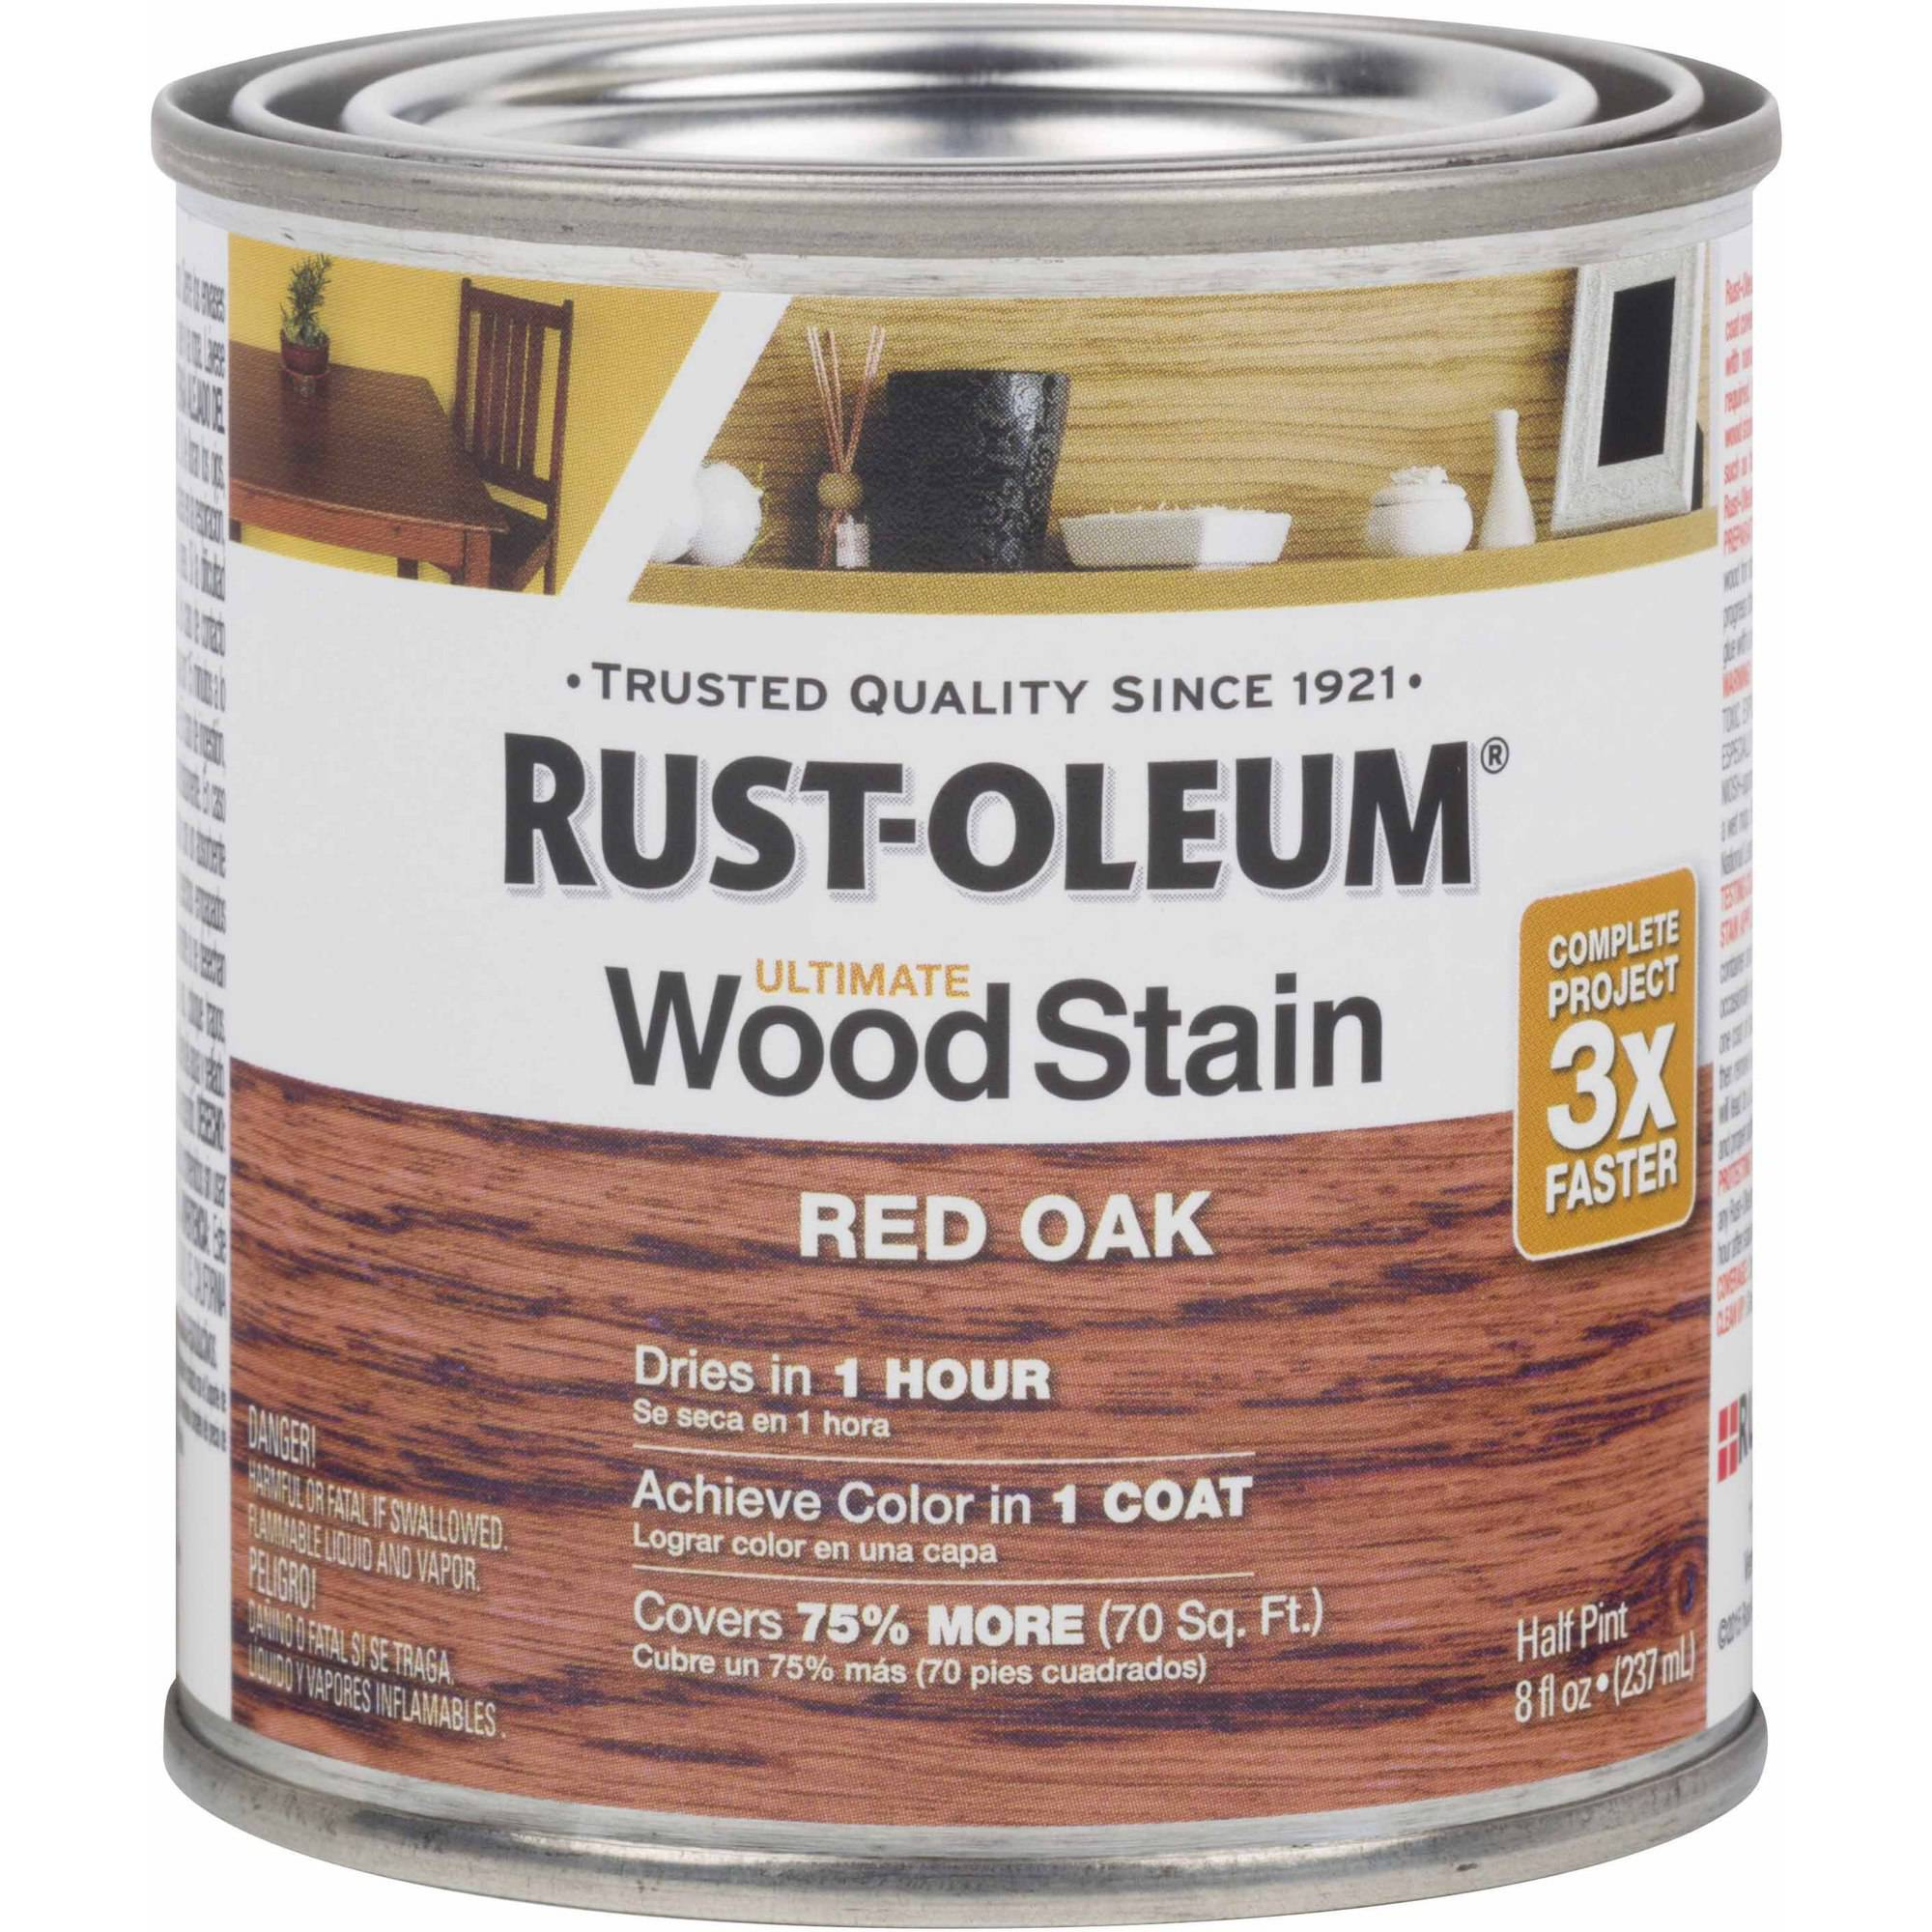 Rust-Oleum Ultimate Wood Stain Half-Pint, Red Oak